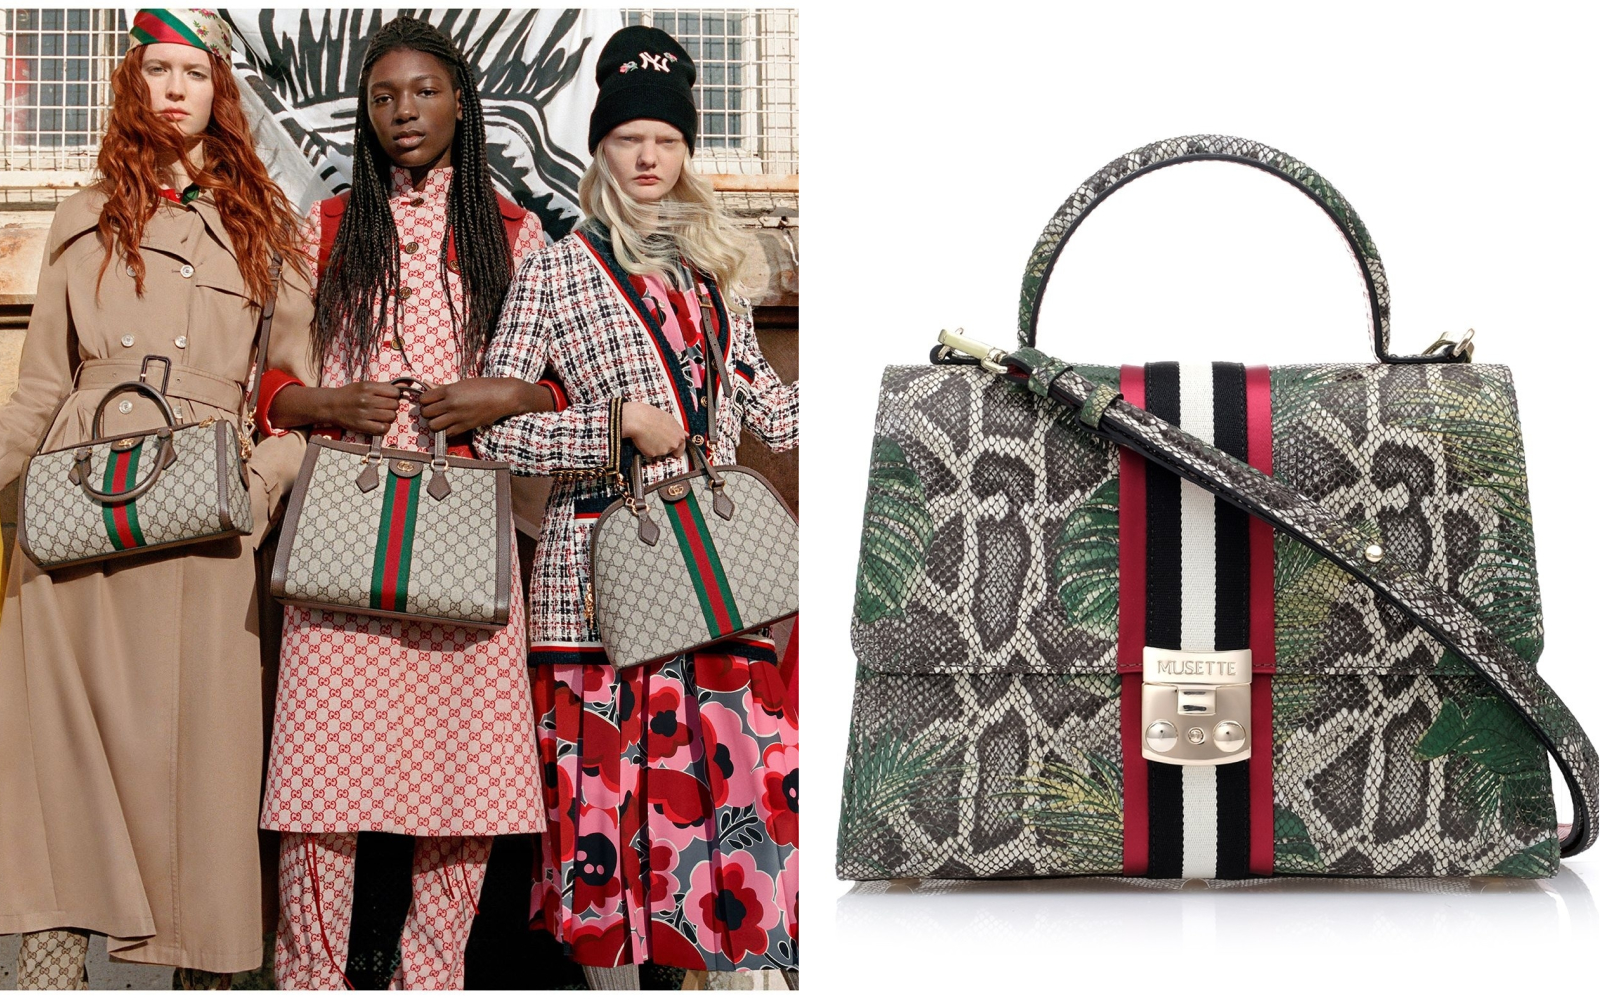 Ups! Musette loves Gucci